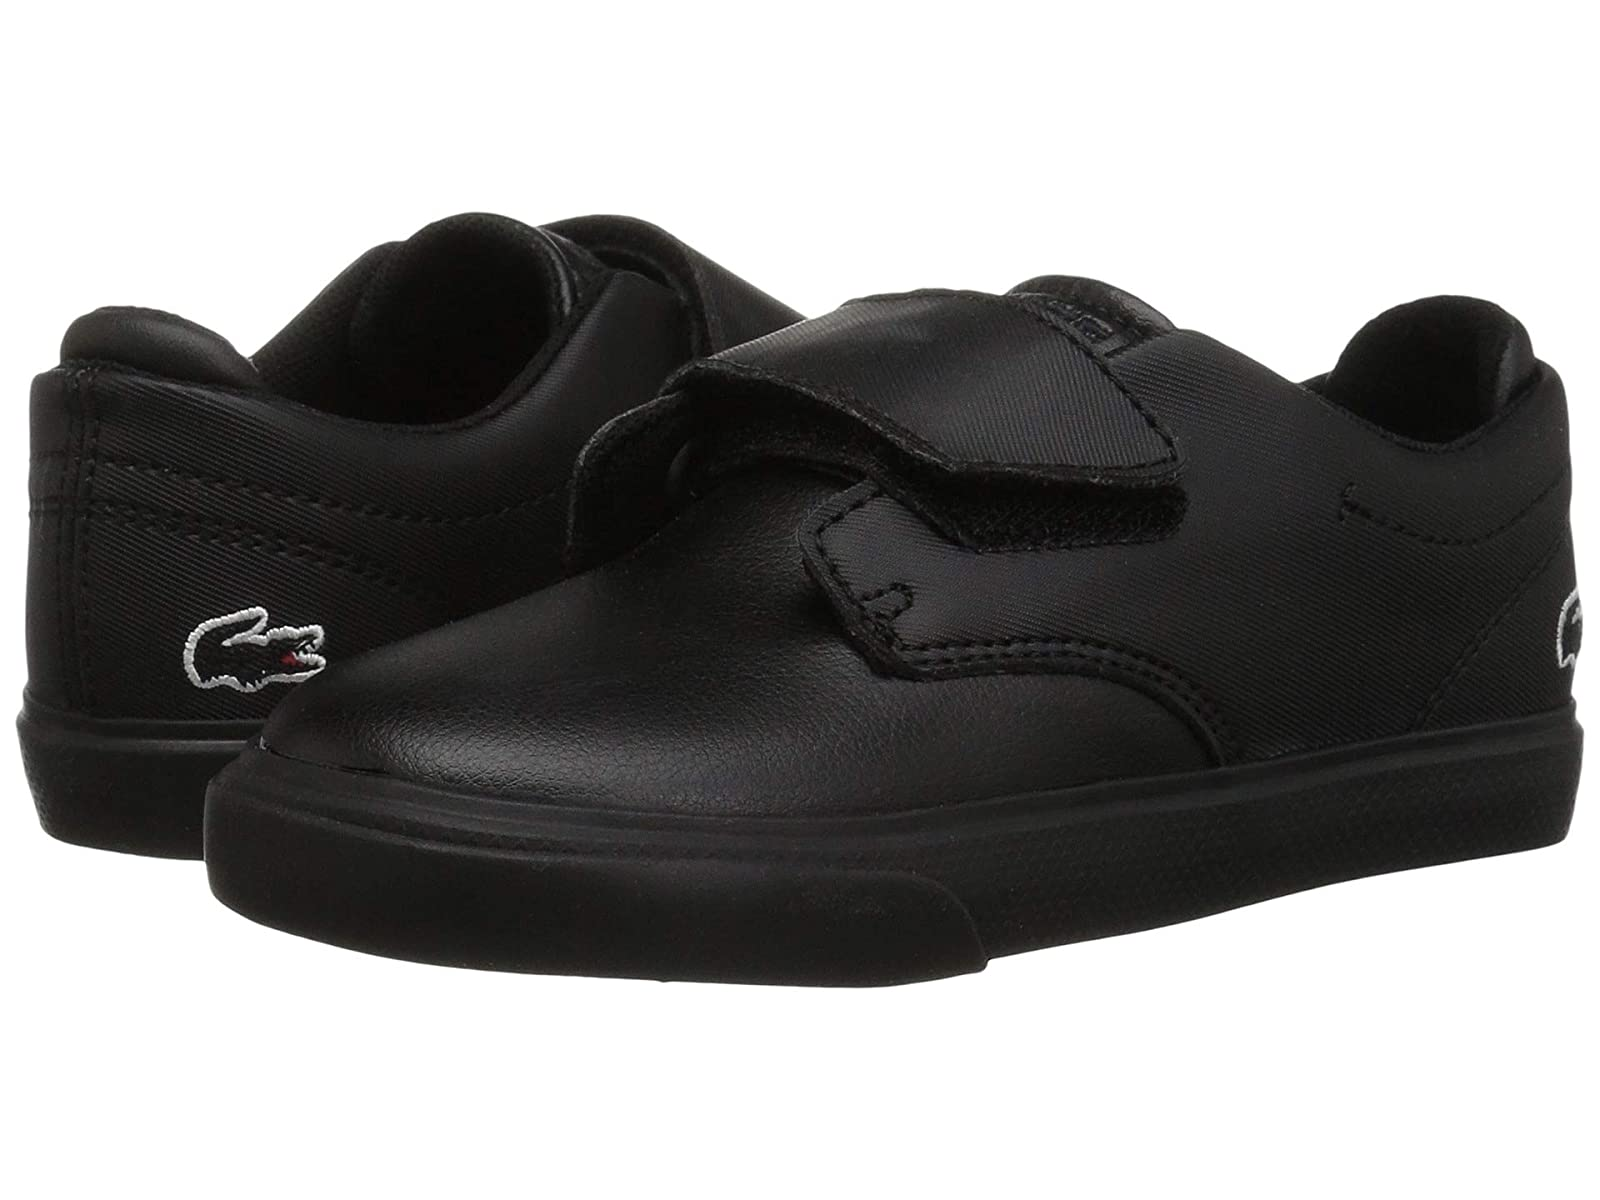 Lacoste Kids Esparre 318 (Toddler/Little Kid)Atmospheric grades have affordable shoes